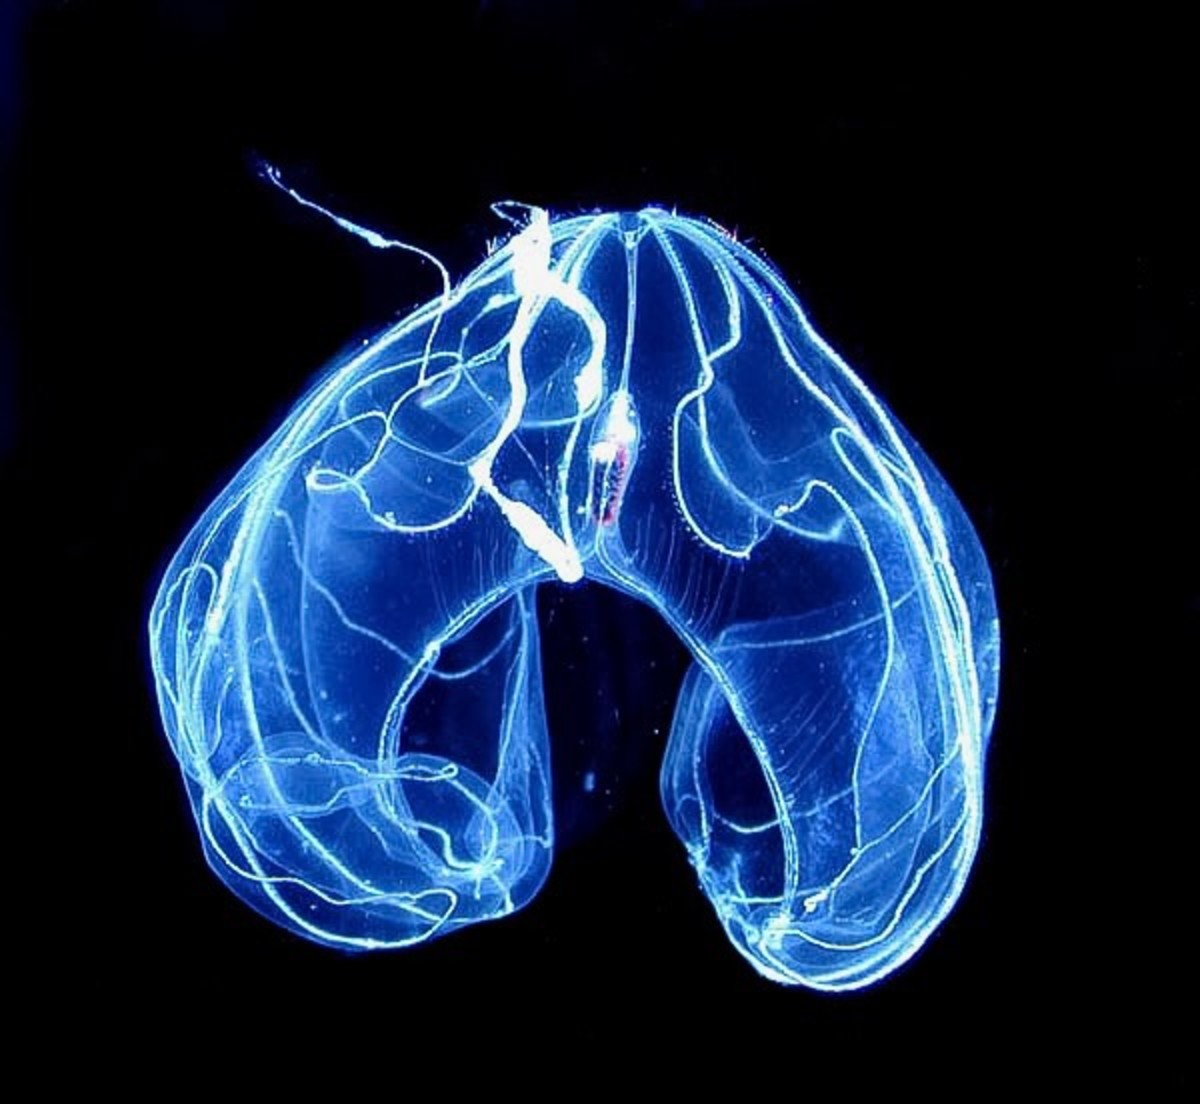 Bioluminescence: Light Emission and Function in Eight Organisms